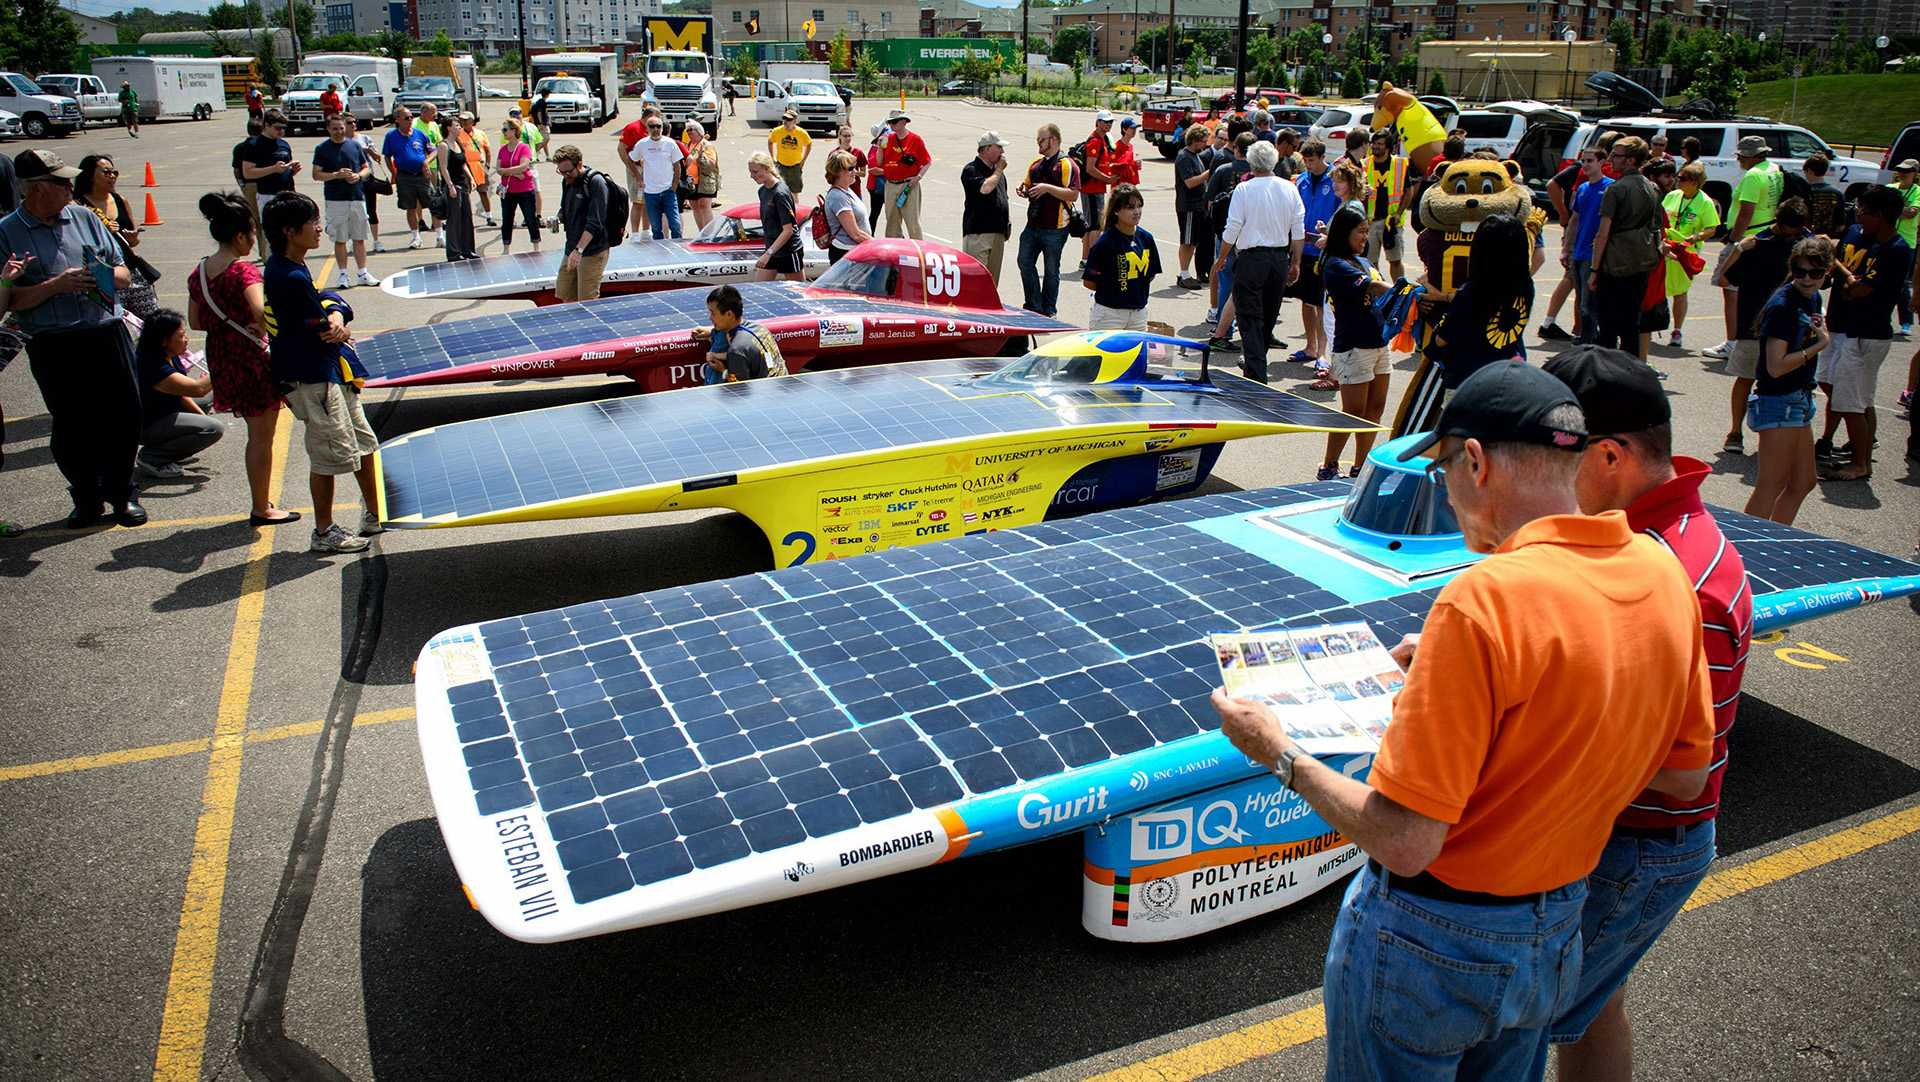 ISU's old solar car hits road to help UI's ASME team